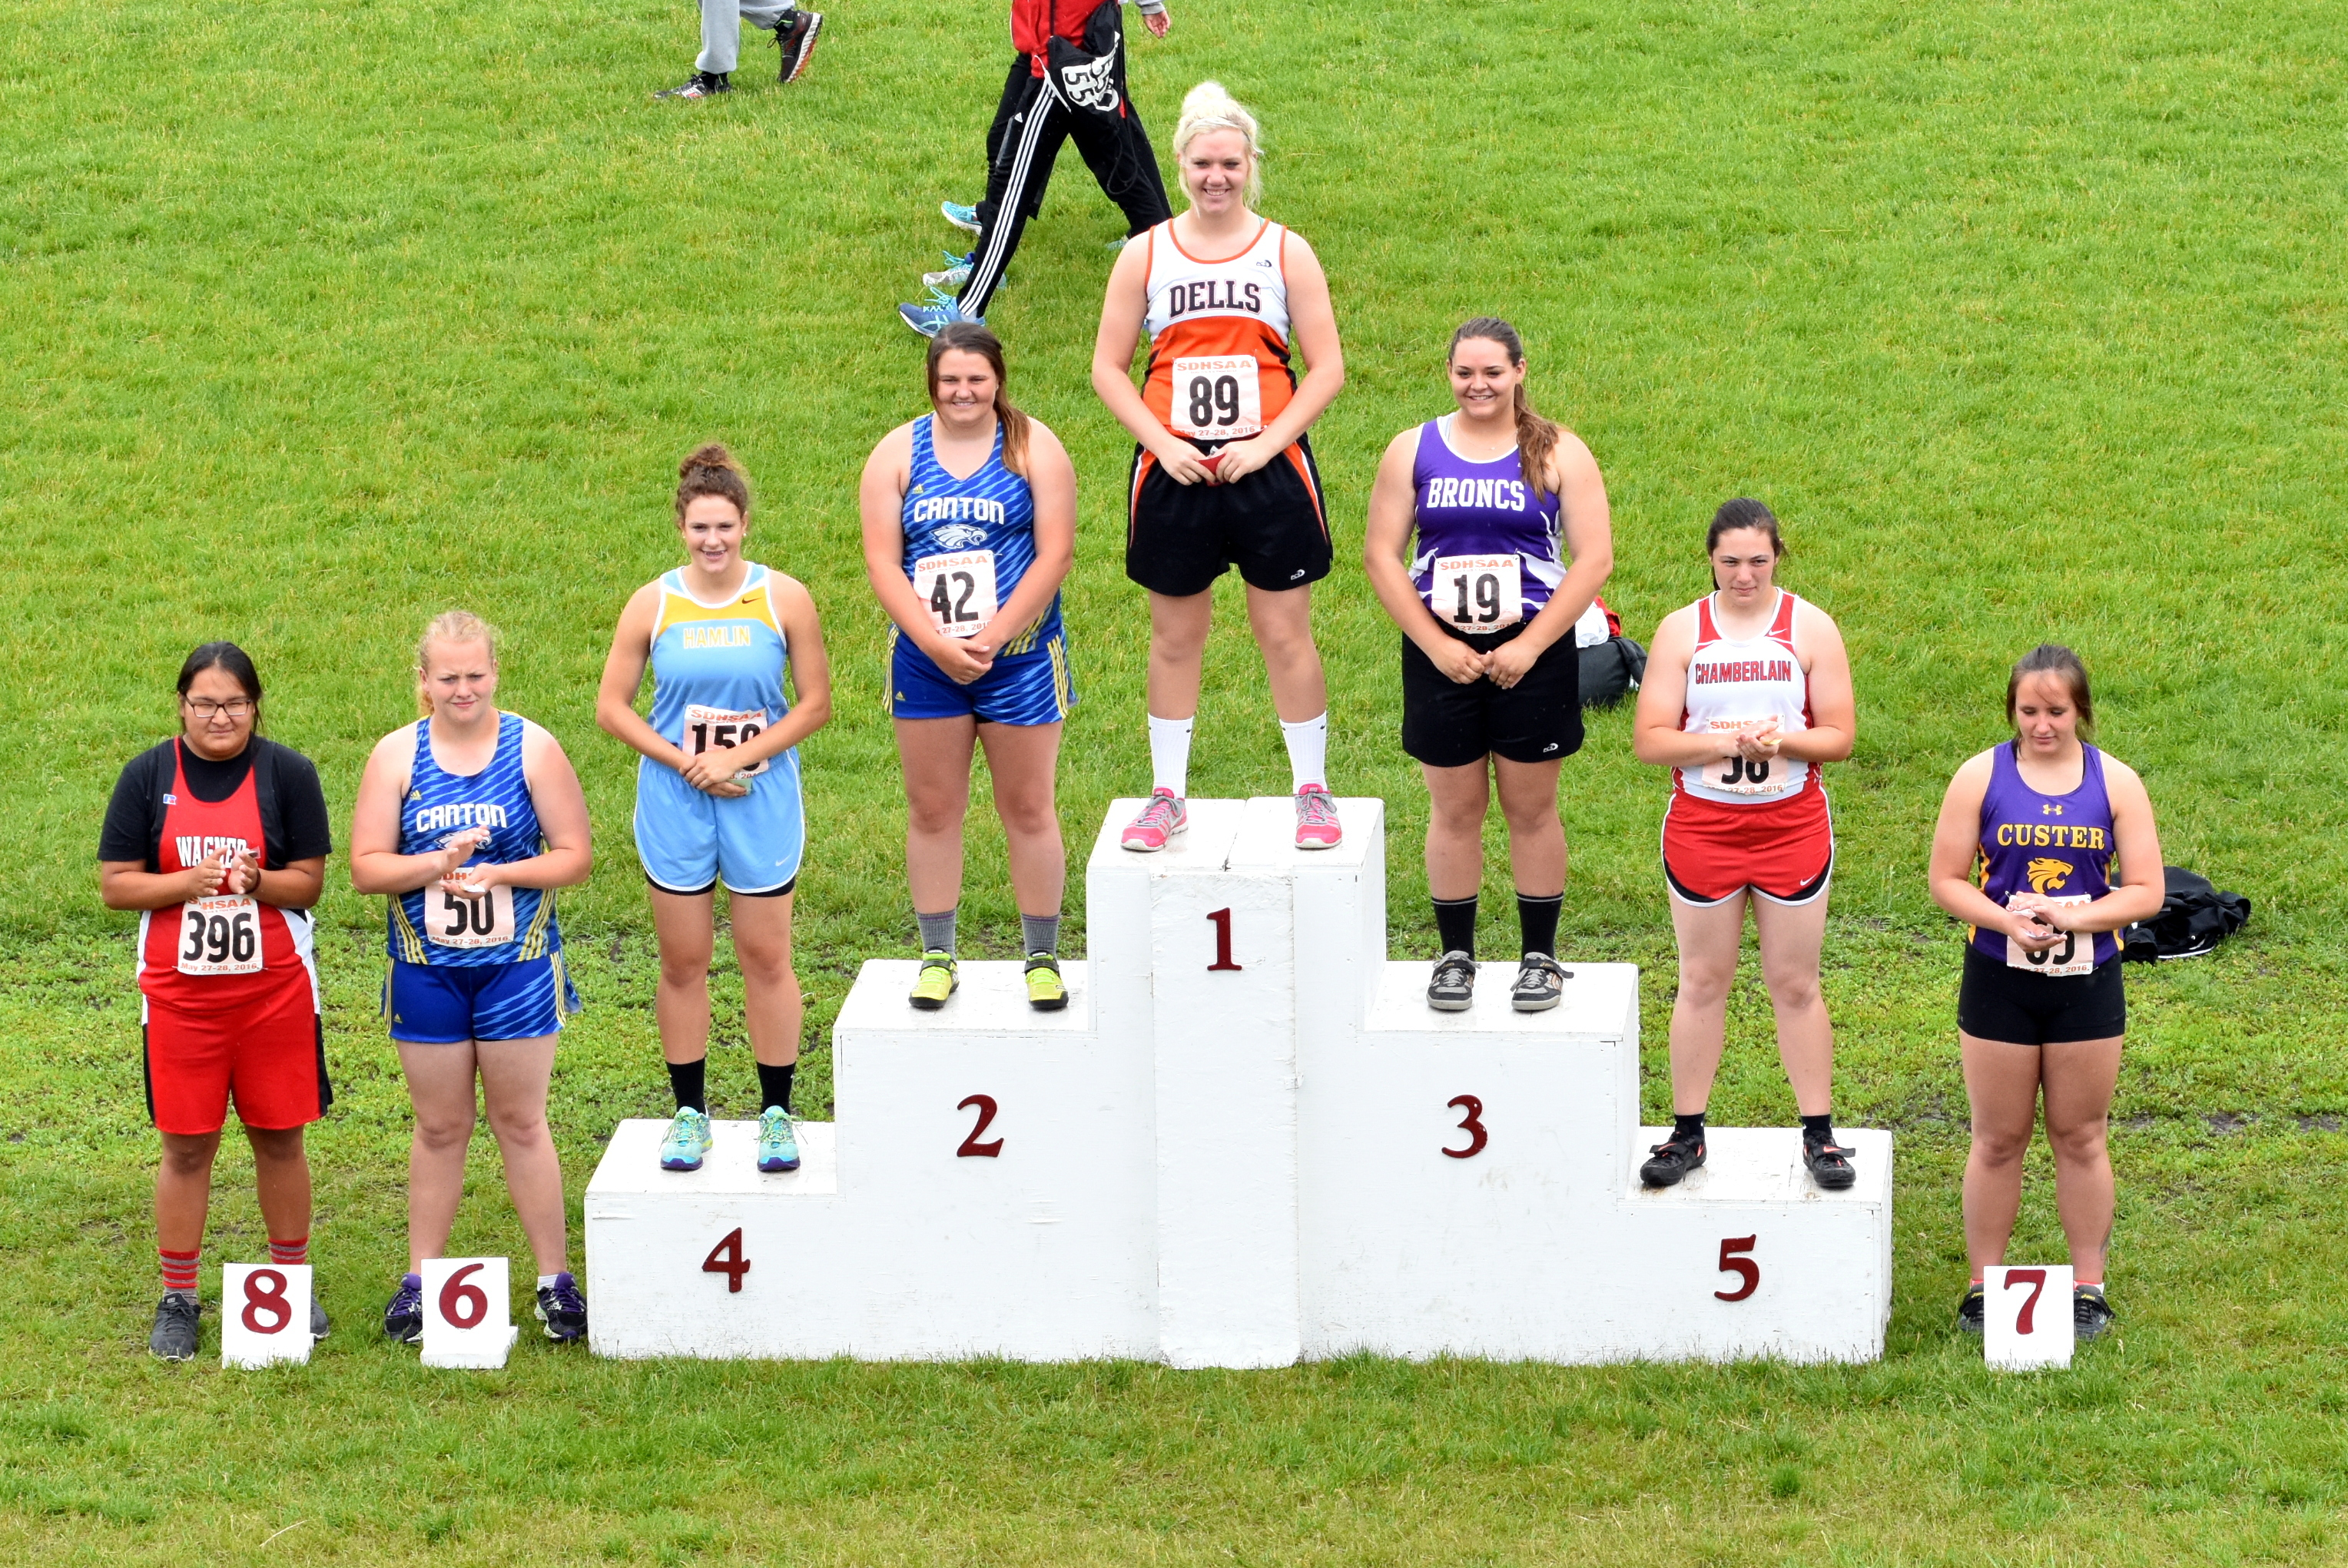 2016 Girls A - Discus